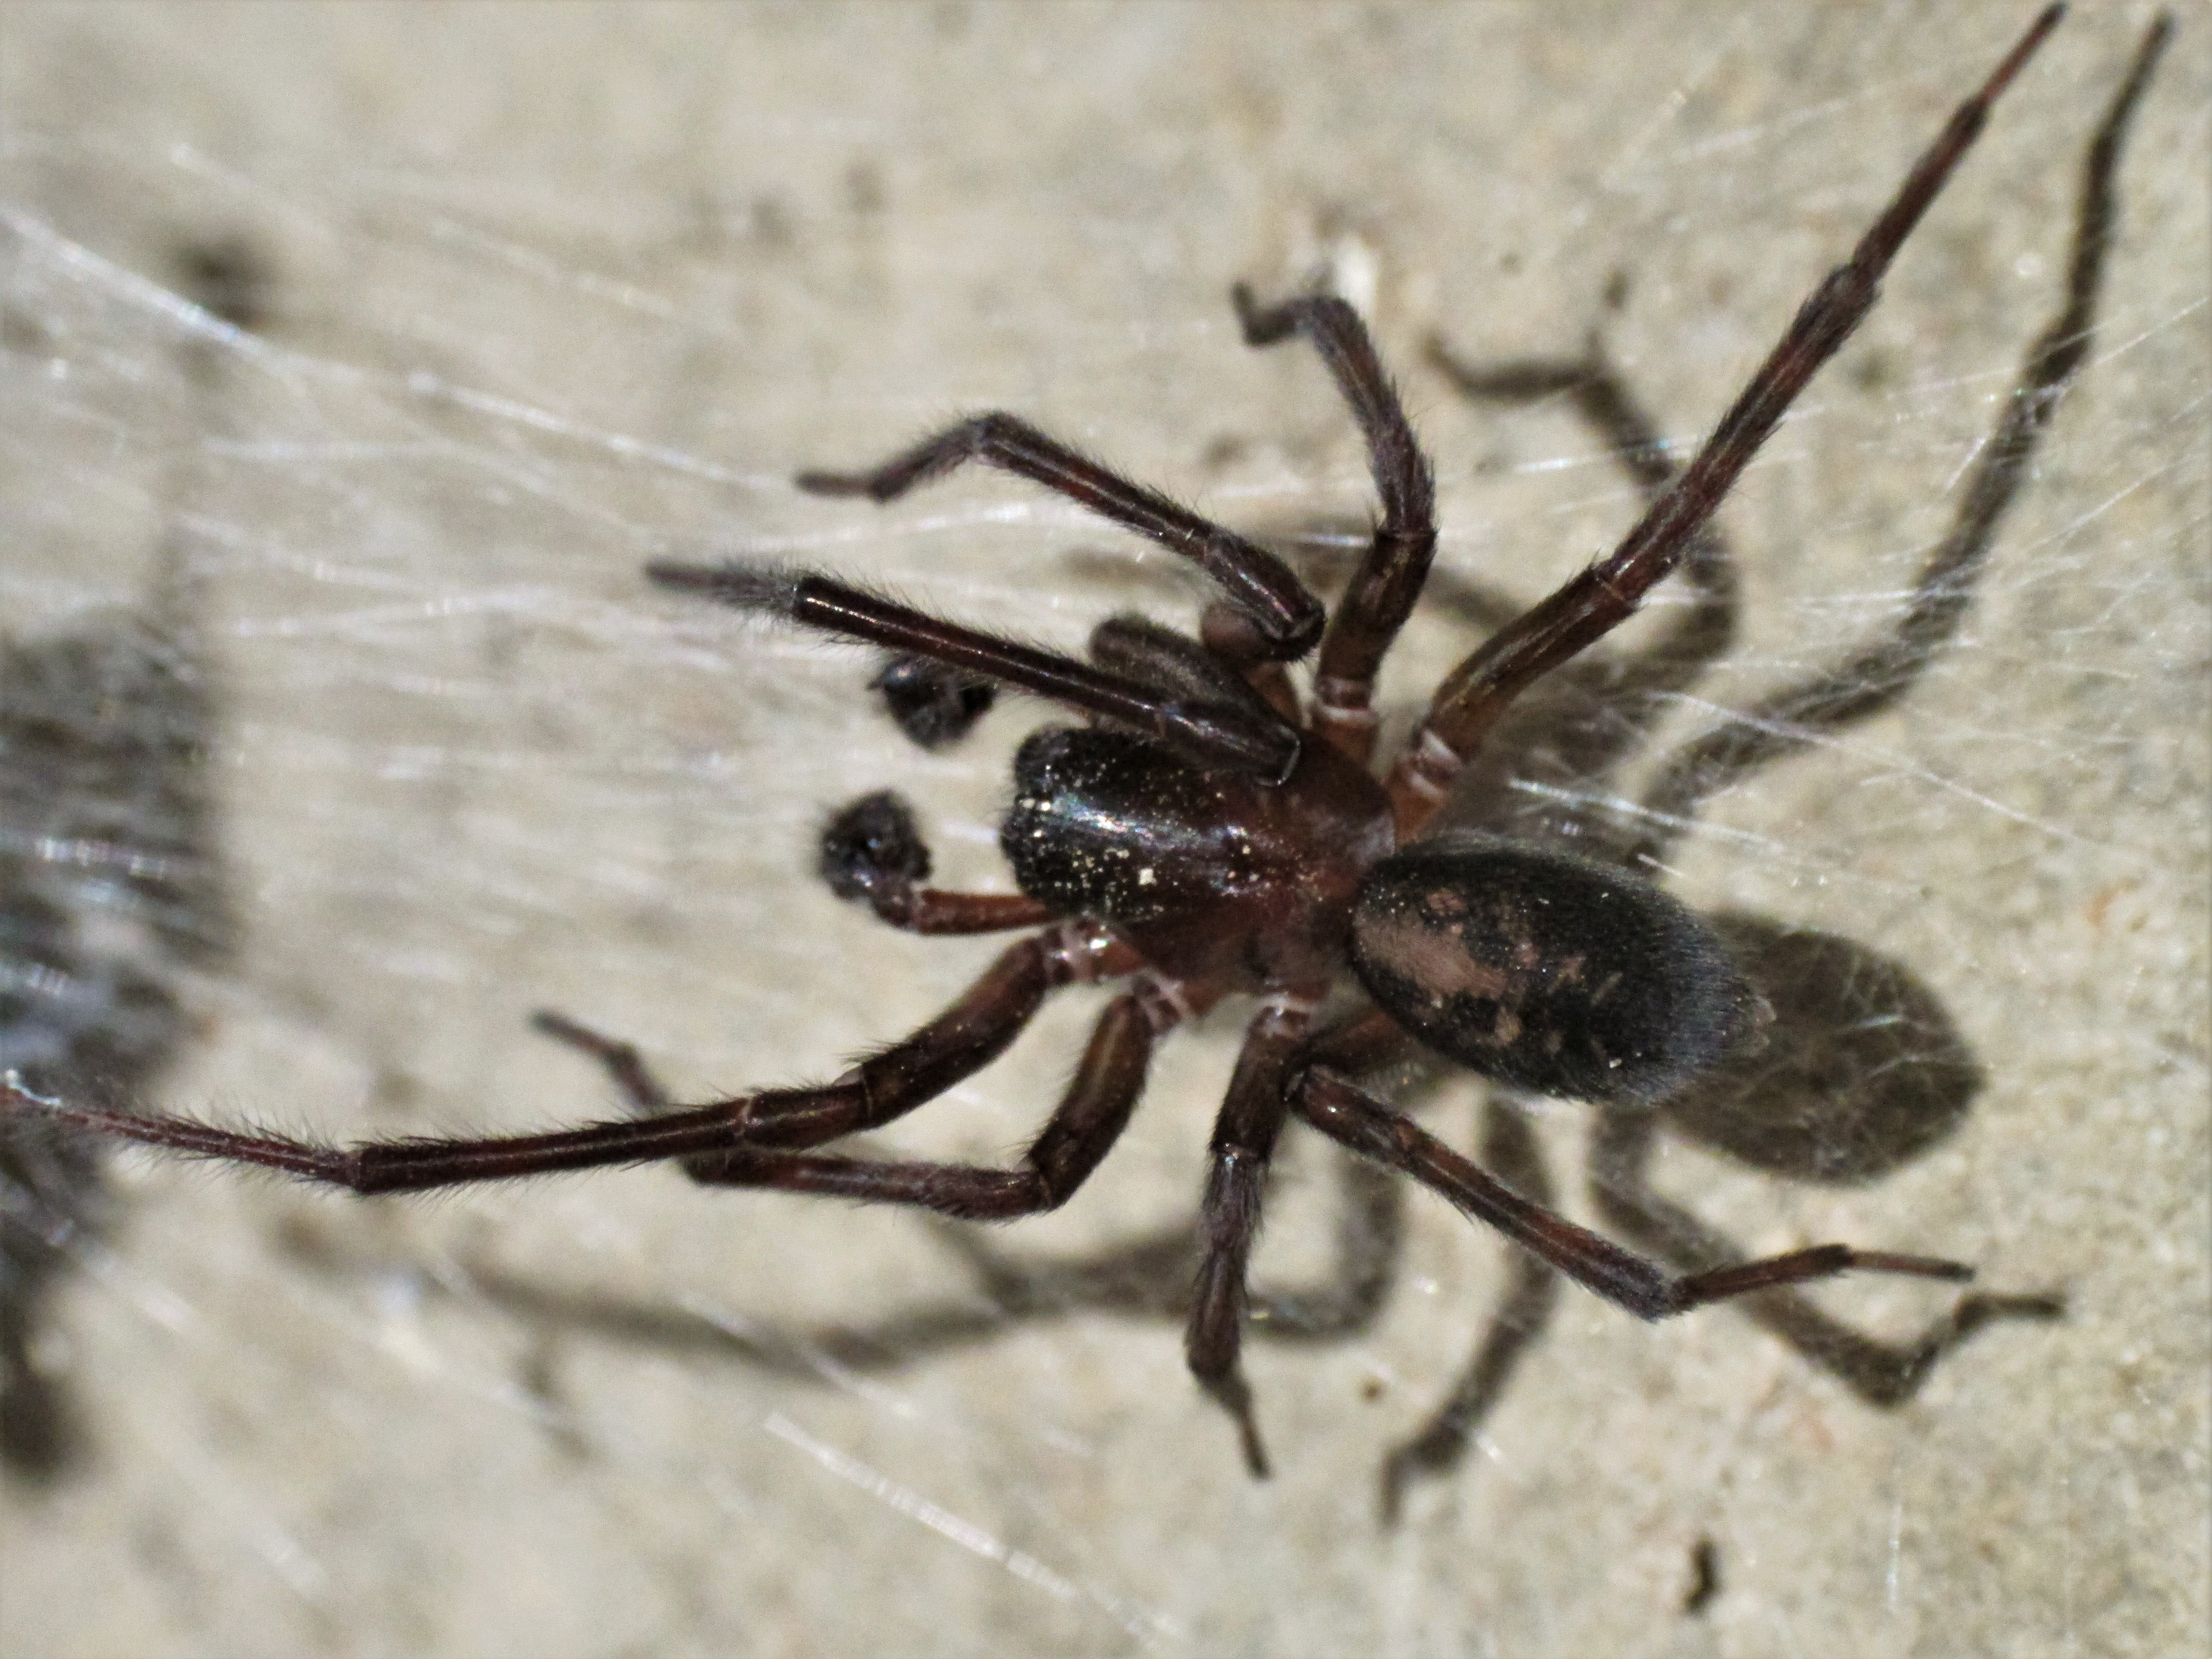 Picture of Amaurobius ferox (Black Lace-Weaver) - Male - Dorsal,Webs